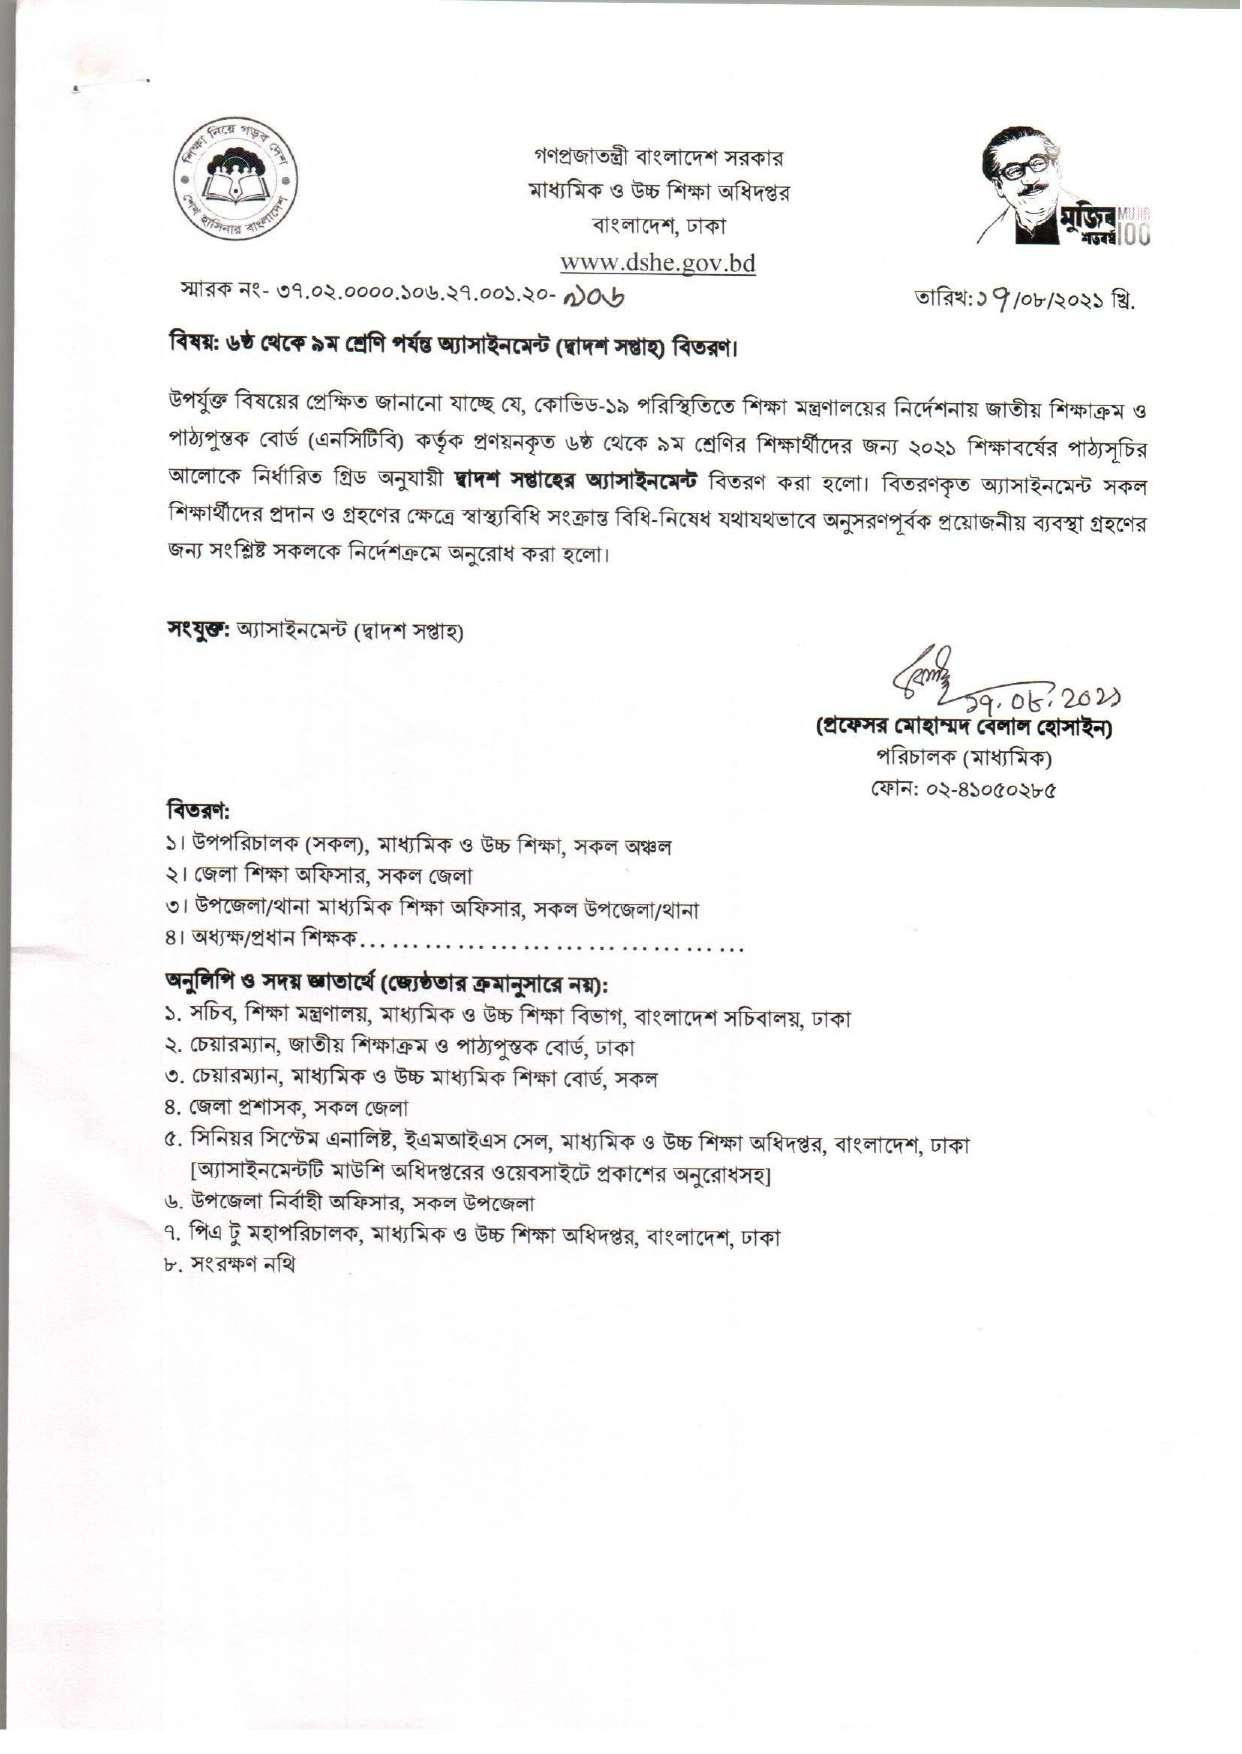 12th Week Class 6 to 9 Assignment 2021 Notice